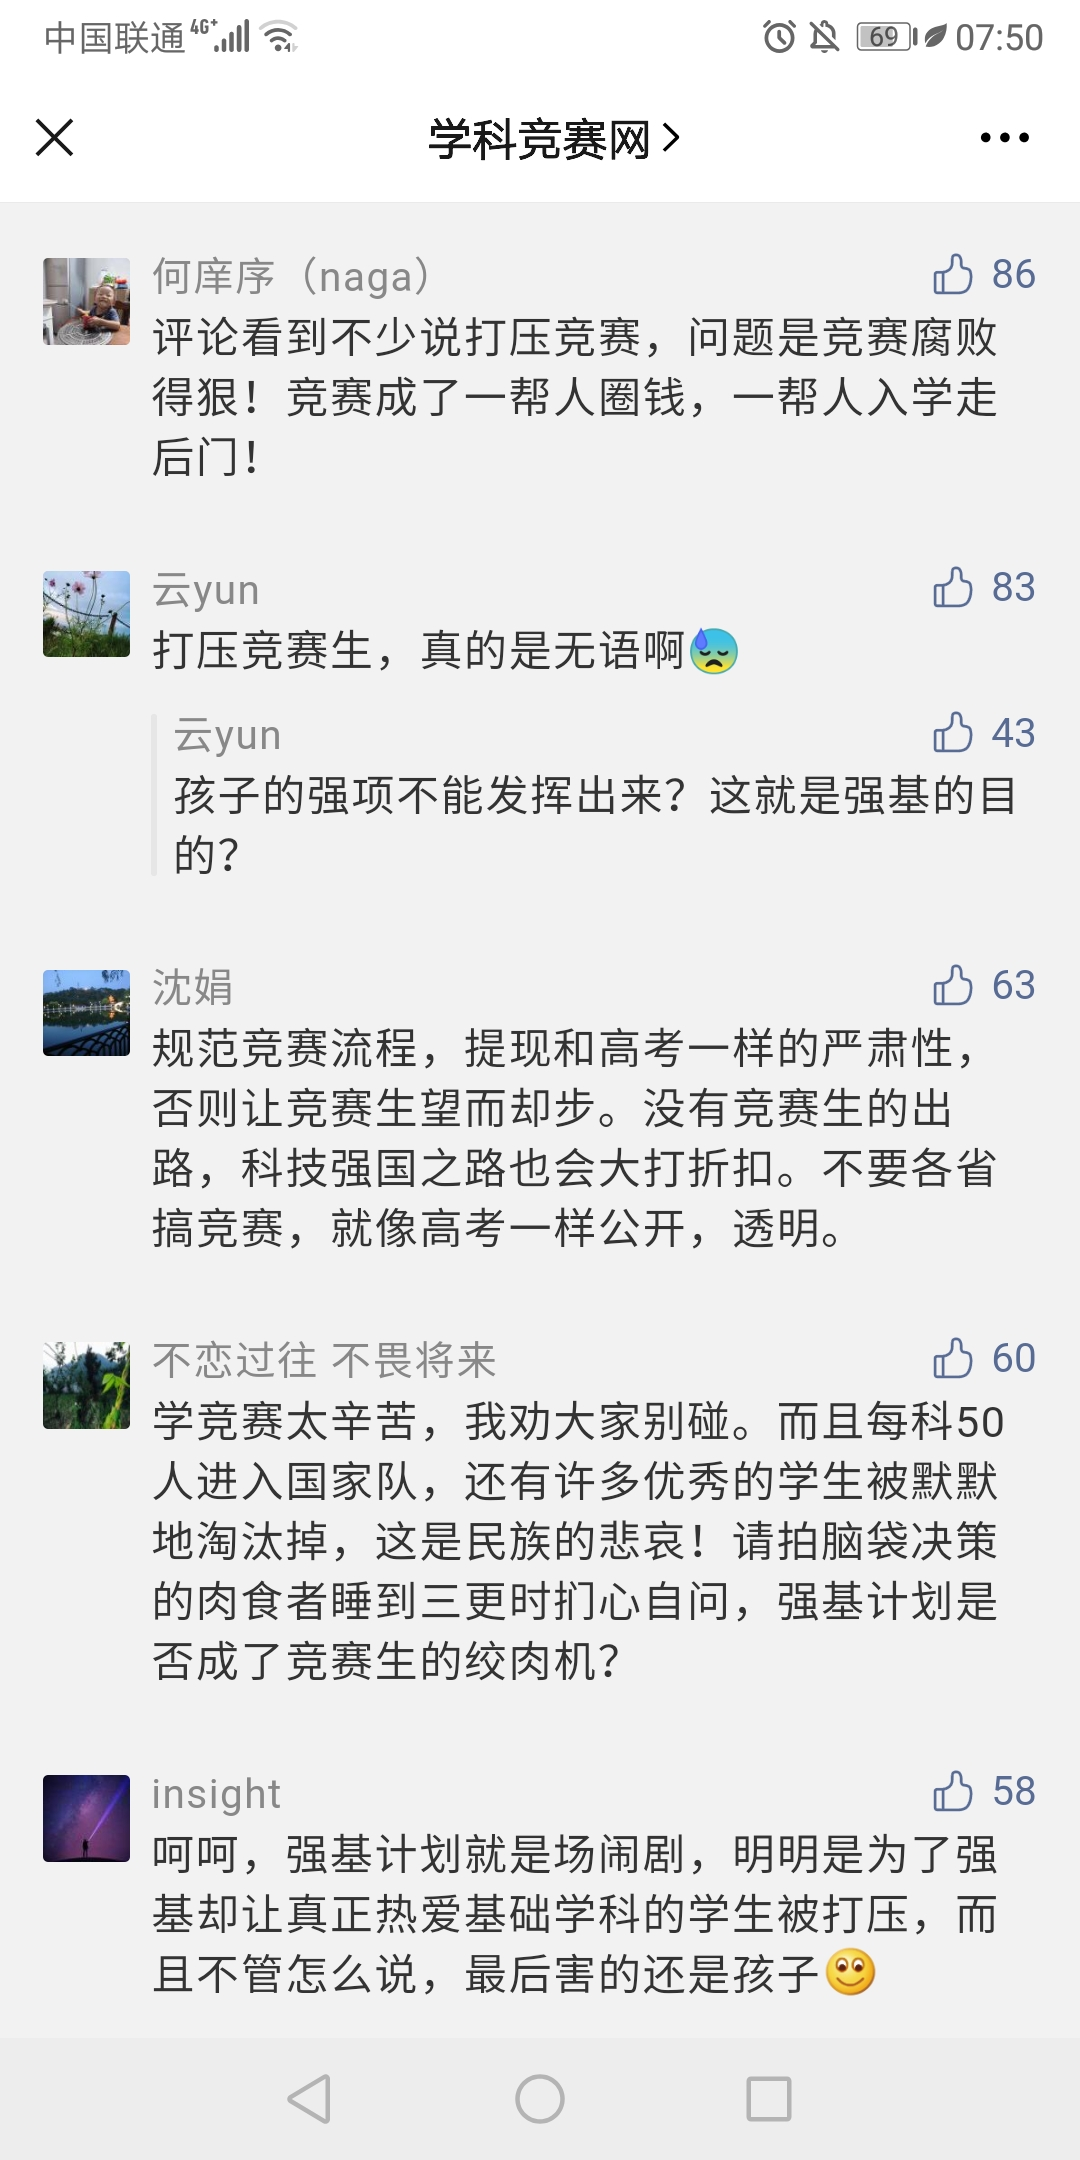 Screenshot_20200915_075008_com.tencent.mm.jpg